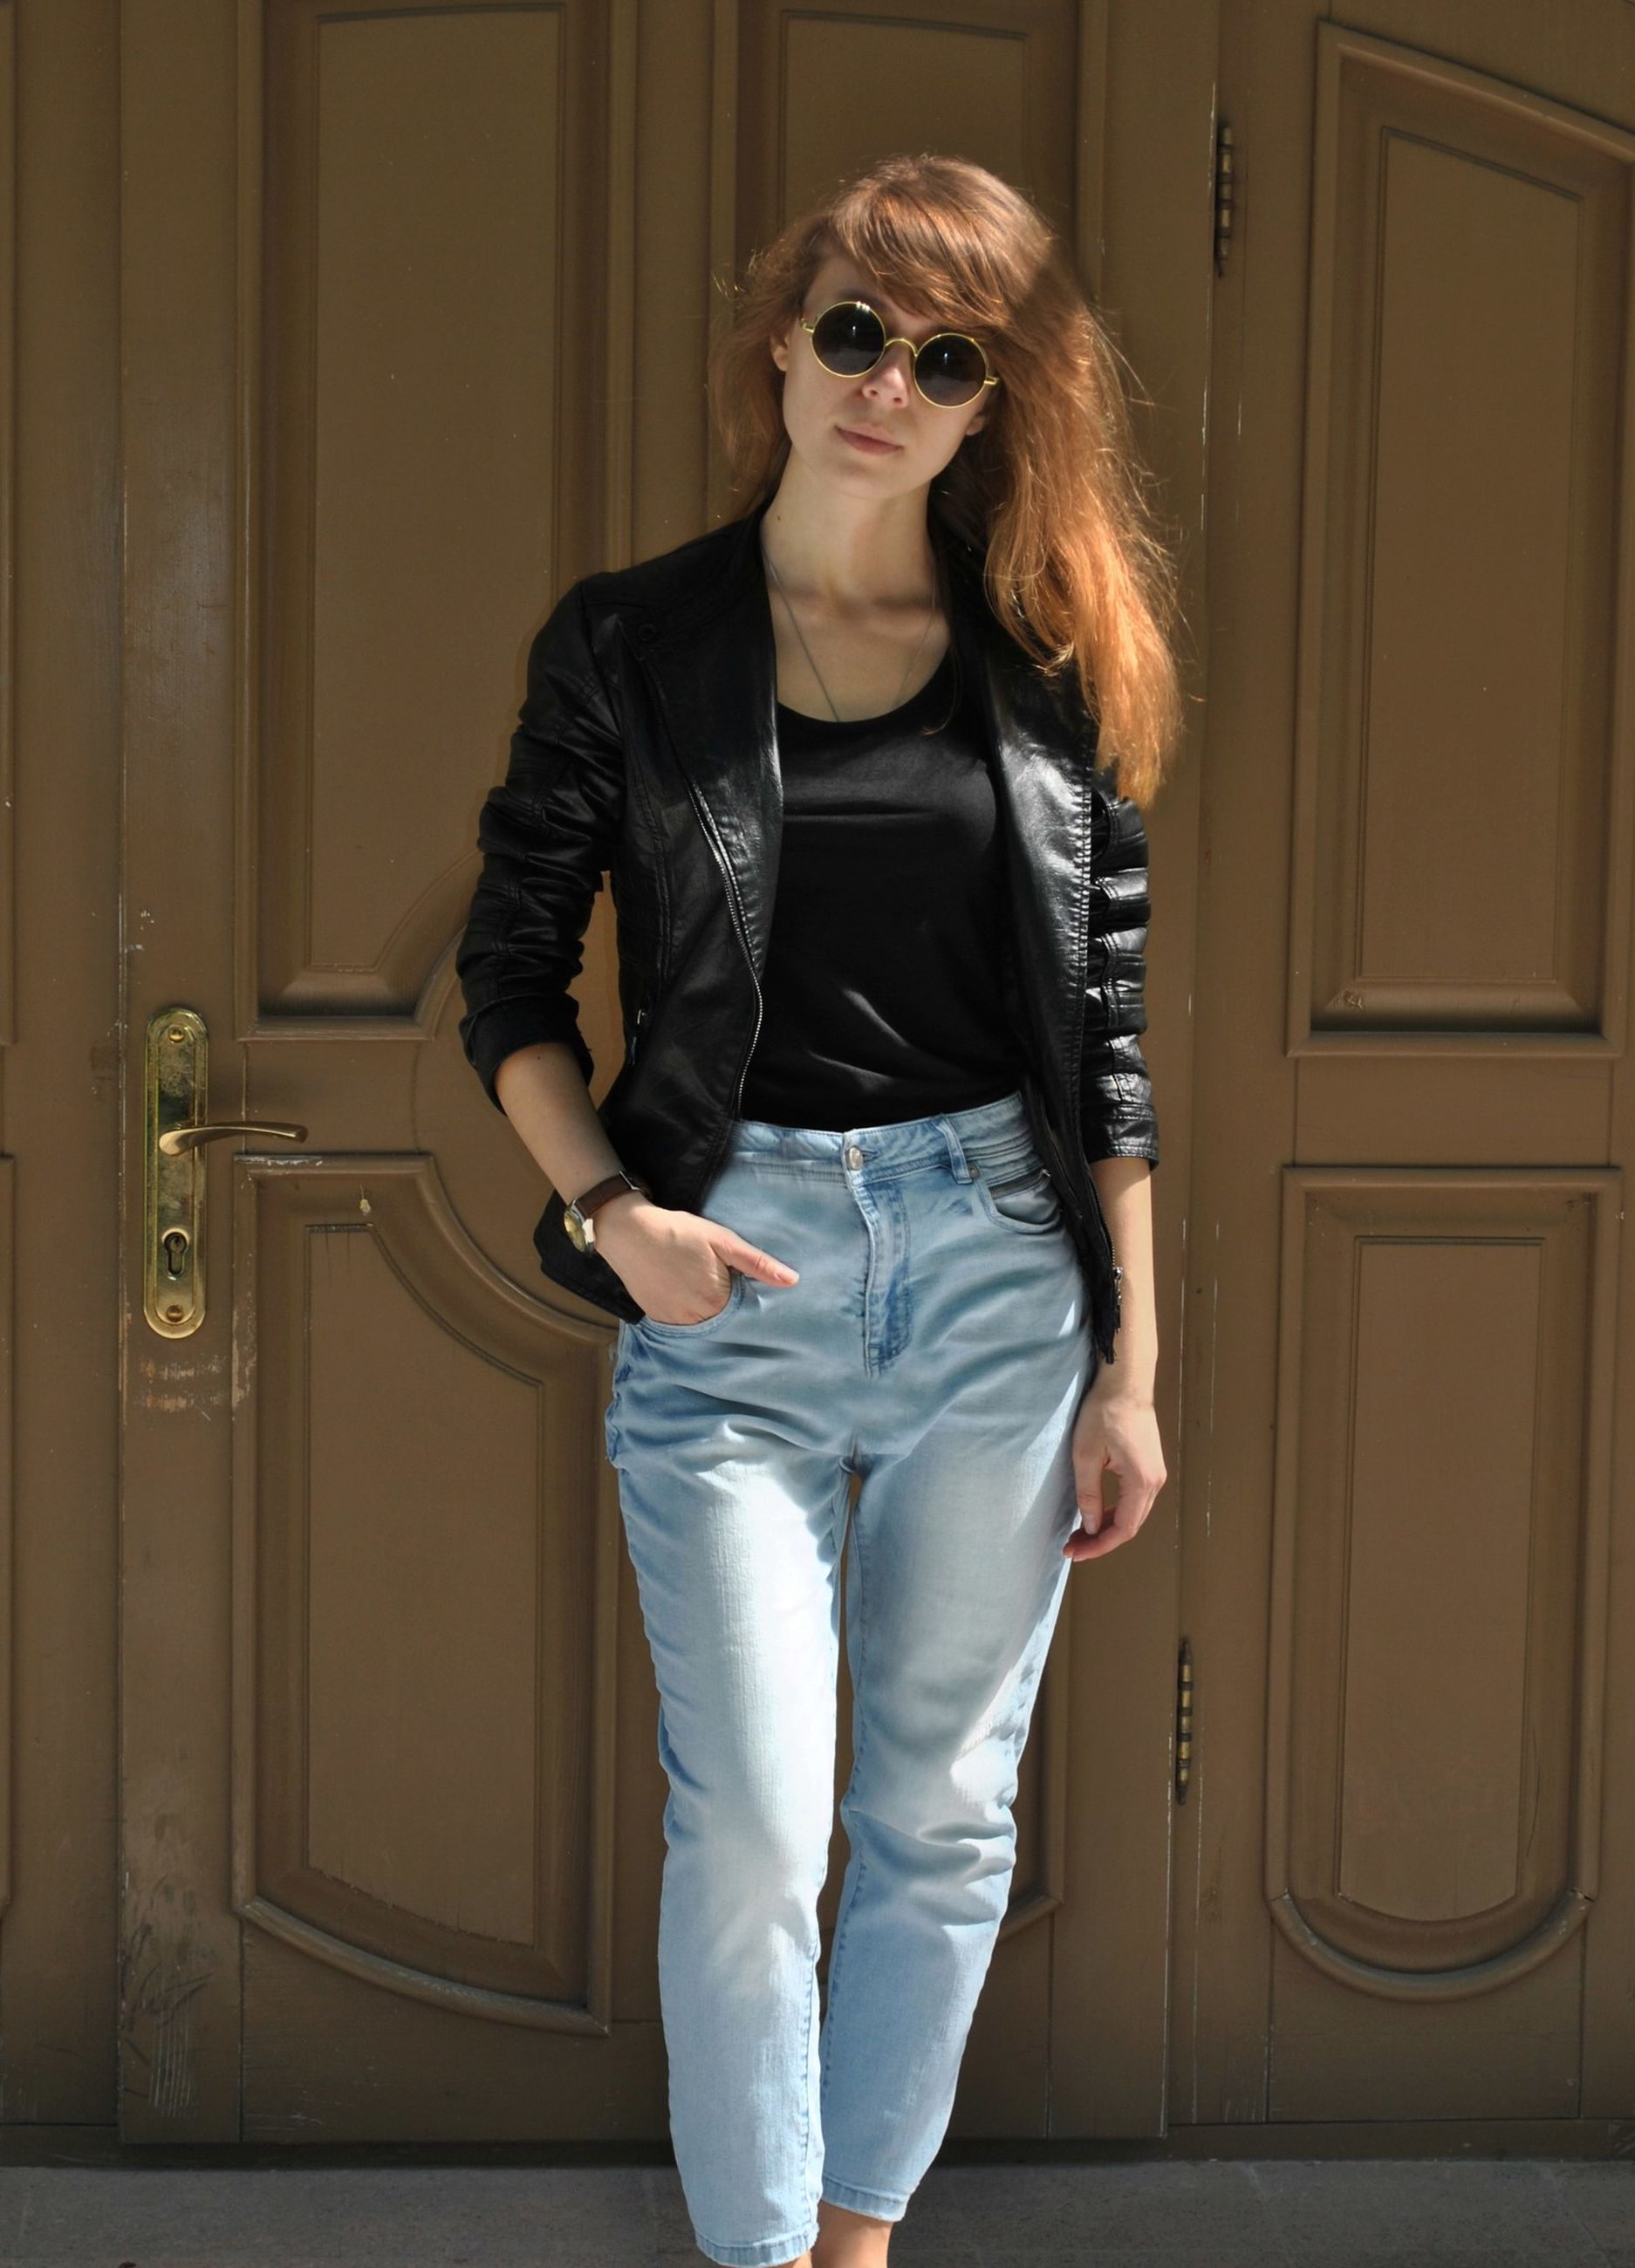 fashion, one person, young adult, standing, front view, real people, sunglasses, beautiful woman, entrance, glasses, beauty, door, lifestyles, casual clothing, young women, portrait, leisure activity, full length, hairstyle, hair, leather